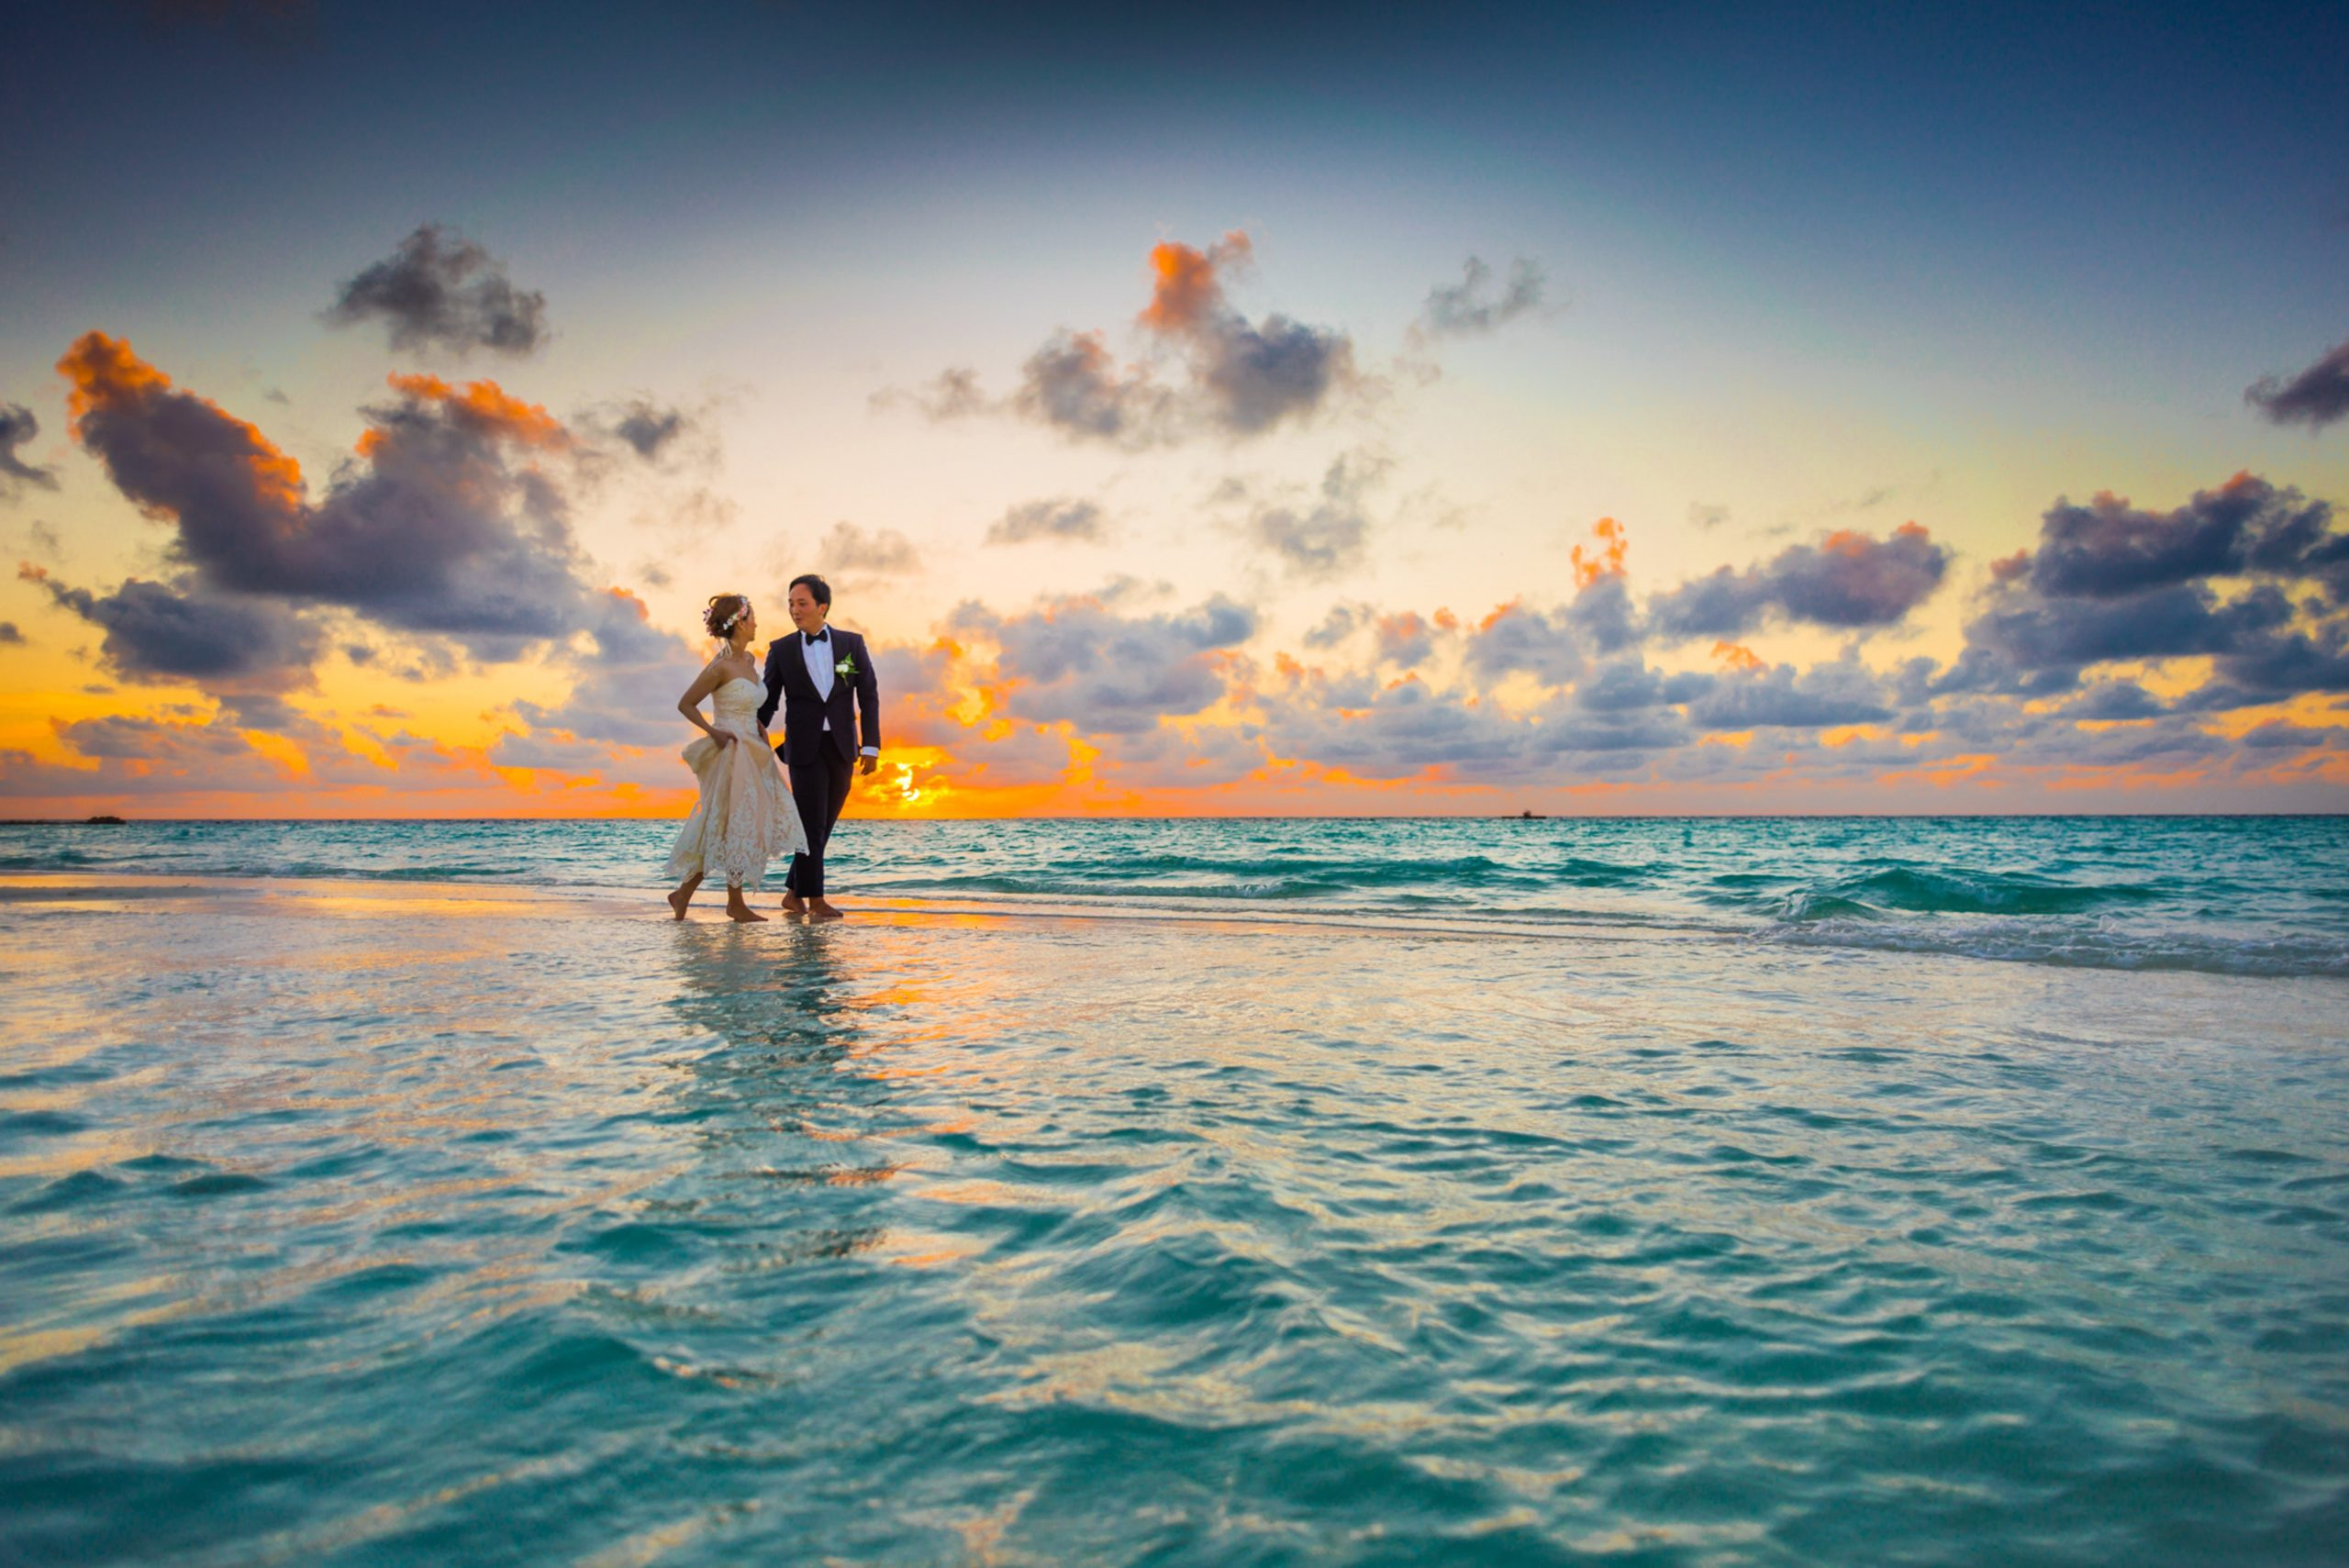 Romantic Travel Honeymoon 13 Days